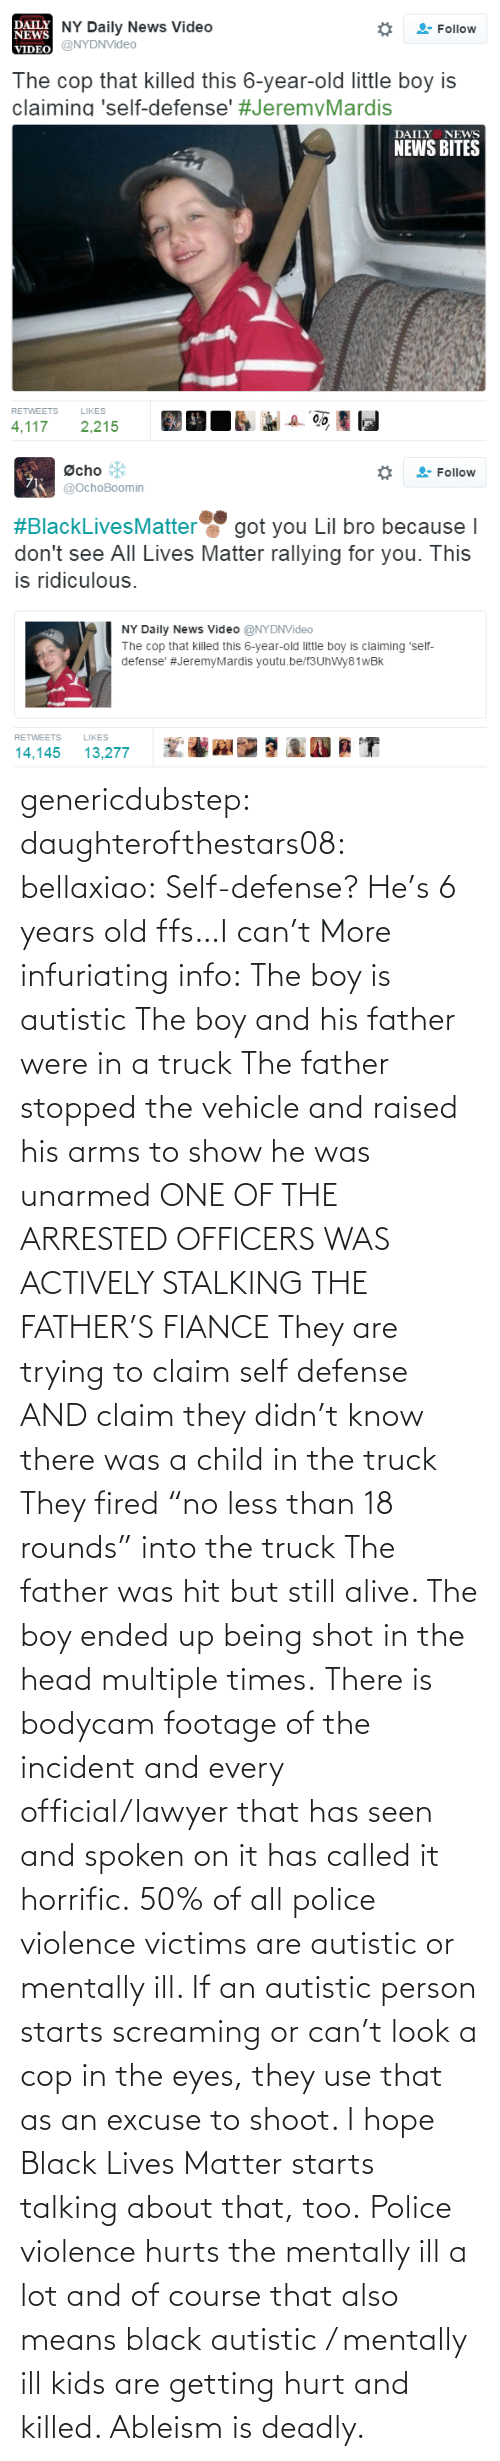 "arms: genericdubstep: daughterofthestars08:  bellaxiao:  Self-defense? He's 6 years old ffs…I can't  More infuriating info: The boy is autistic The boy and his father were in a truck The father stopped the vehicle and raised his arms to show he was unarmed ONE OF THE ARRESTED OFFICERS WAS ACTIVELY STALKING THE FATHER'S FIANCE They are trying to claim self defense AND claim they didn't know there was a child in the truck They fired ""no less than 18 rounds"" into the truck The father was hit but still alive. The boy ended up being shot in the head multiple times. There is bodycam footage of the incident and every official/lawyer that has seen and spoken on it has called it horrific.  50% of all police violence victims are autistic or mentally ill. If an autistic person starts screaming or can't look a cop in the eyes, they use that as an excuse to shoot. I hope Black Lives Matter starts talking about that, too. Police violence hurts the mentally ill a lot and of course that also means black autistic / mentally ill kids are getting hurt and killed. Ableism is deadly."